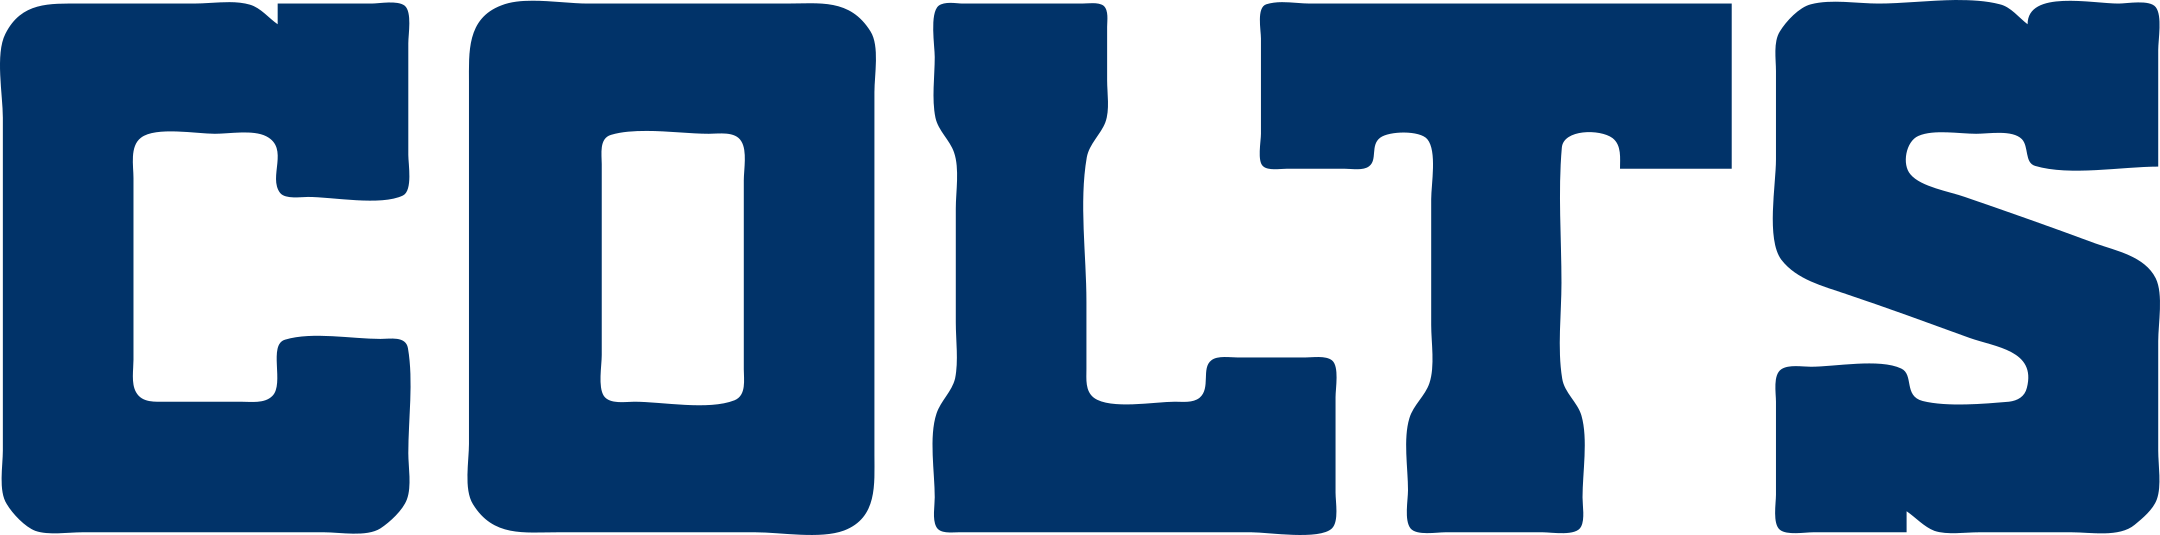 indianapolis colts logo 5 - Indianapolis Colts Logo